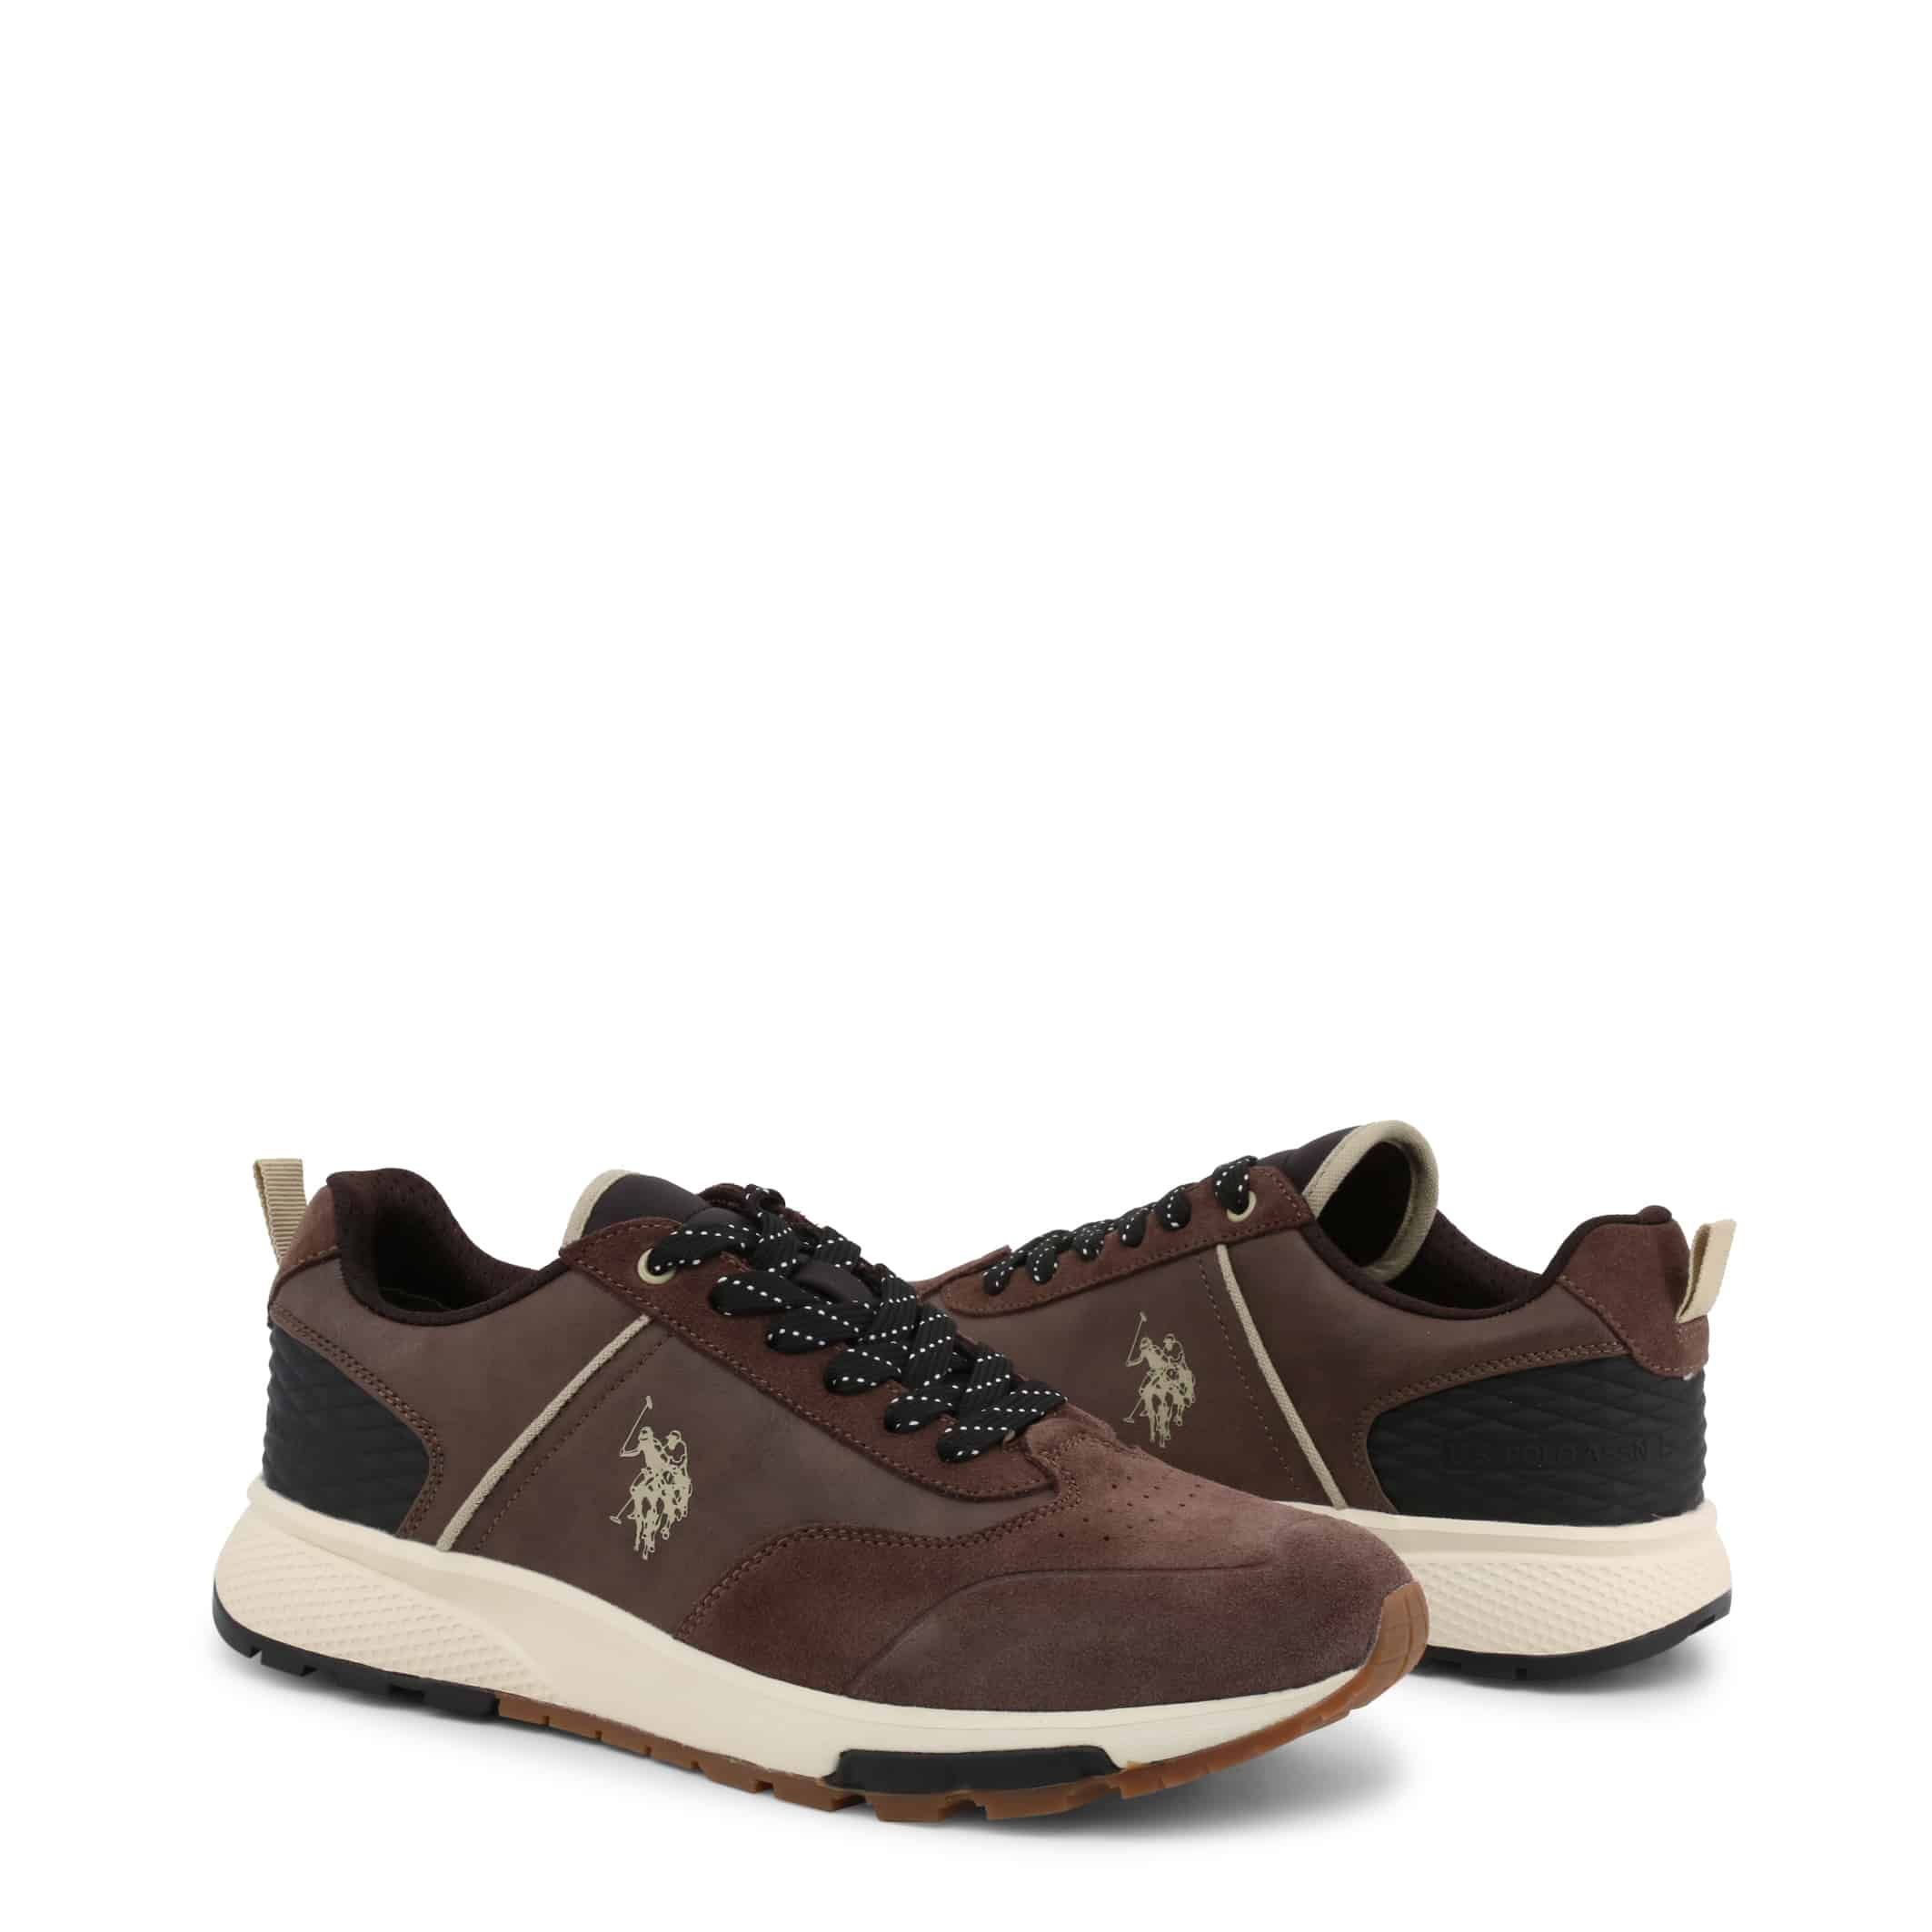 Sneakers U.S. Polo Assn. – AXEL4120W9_SY1